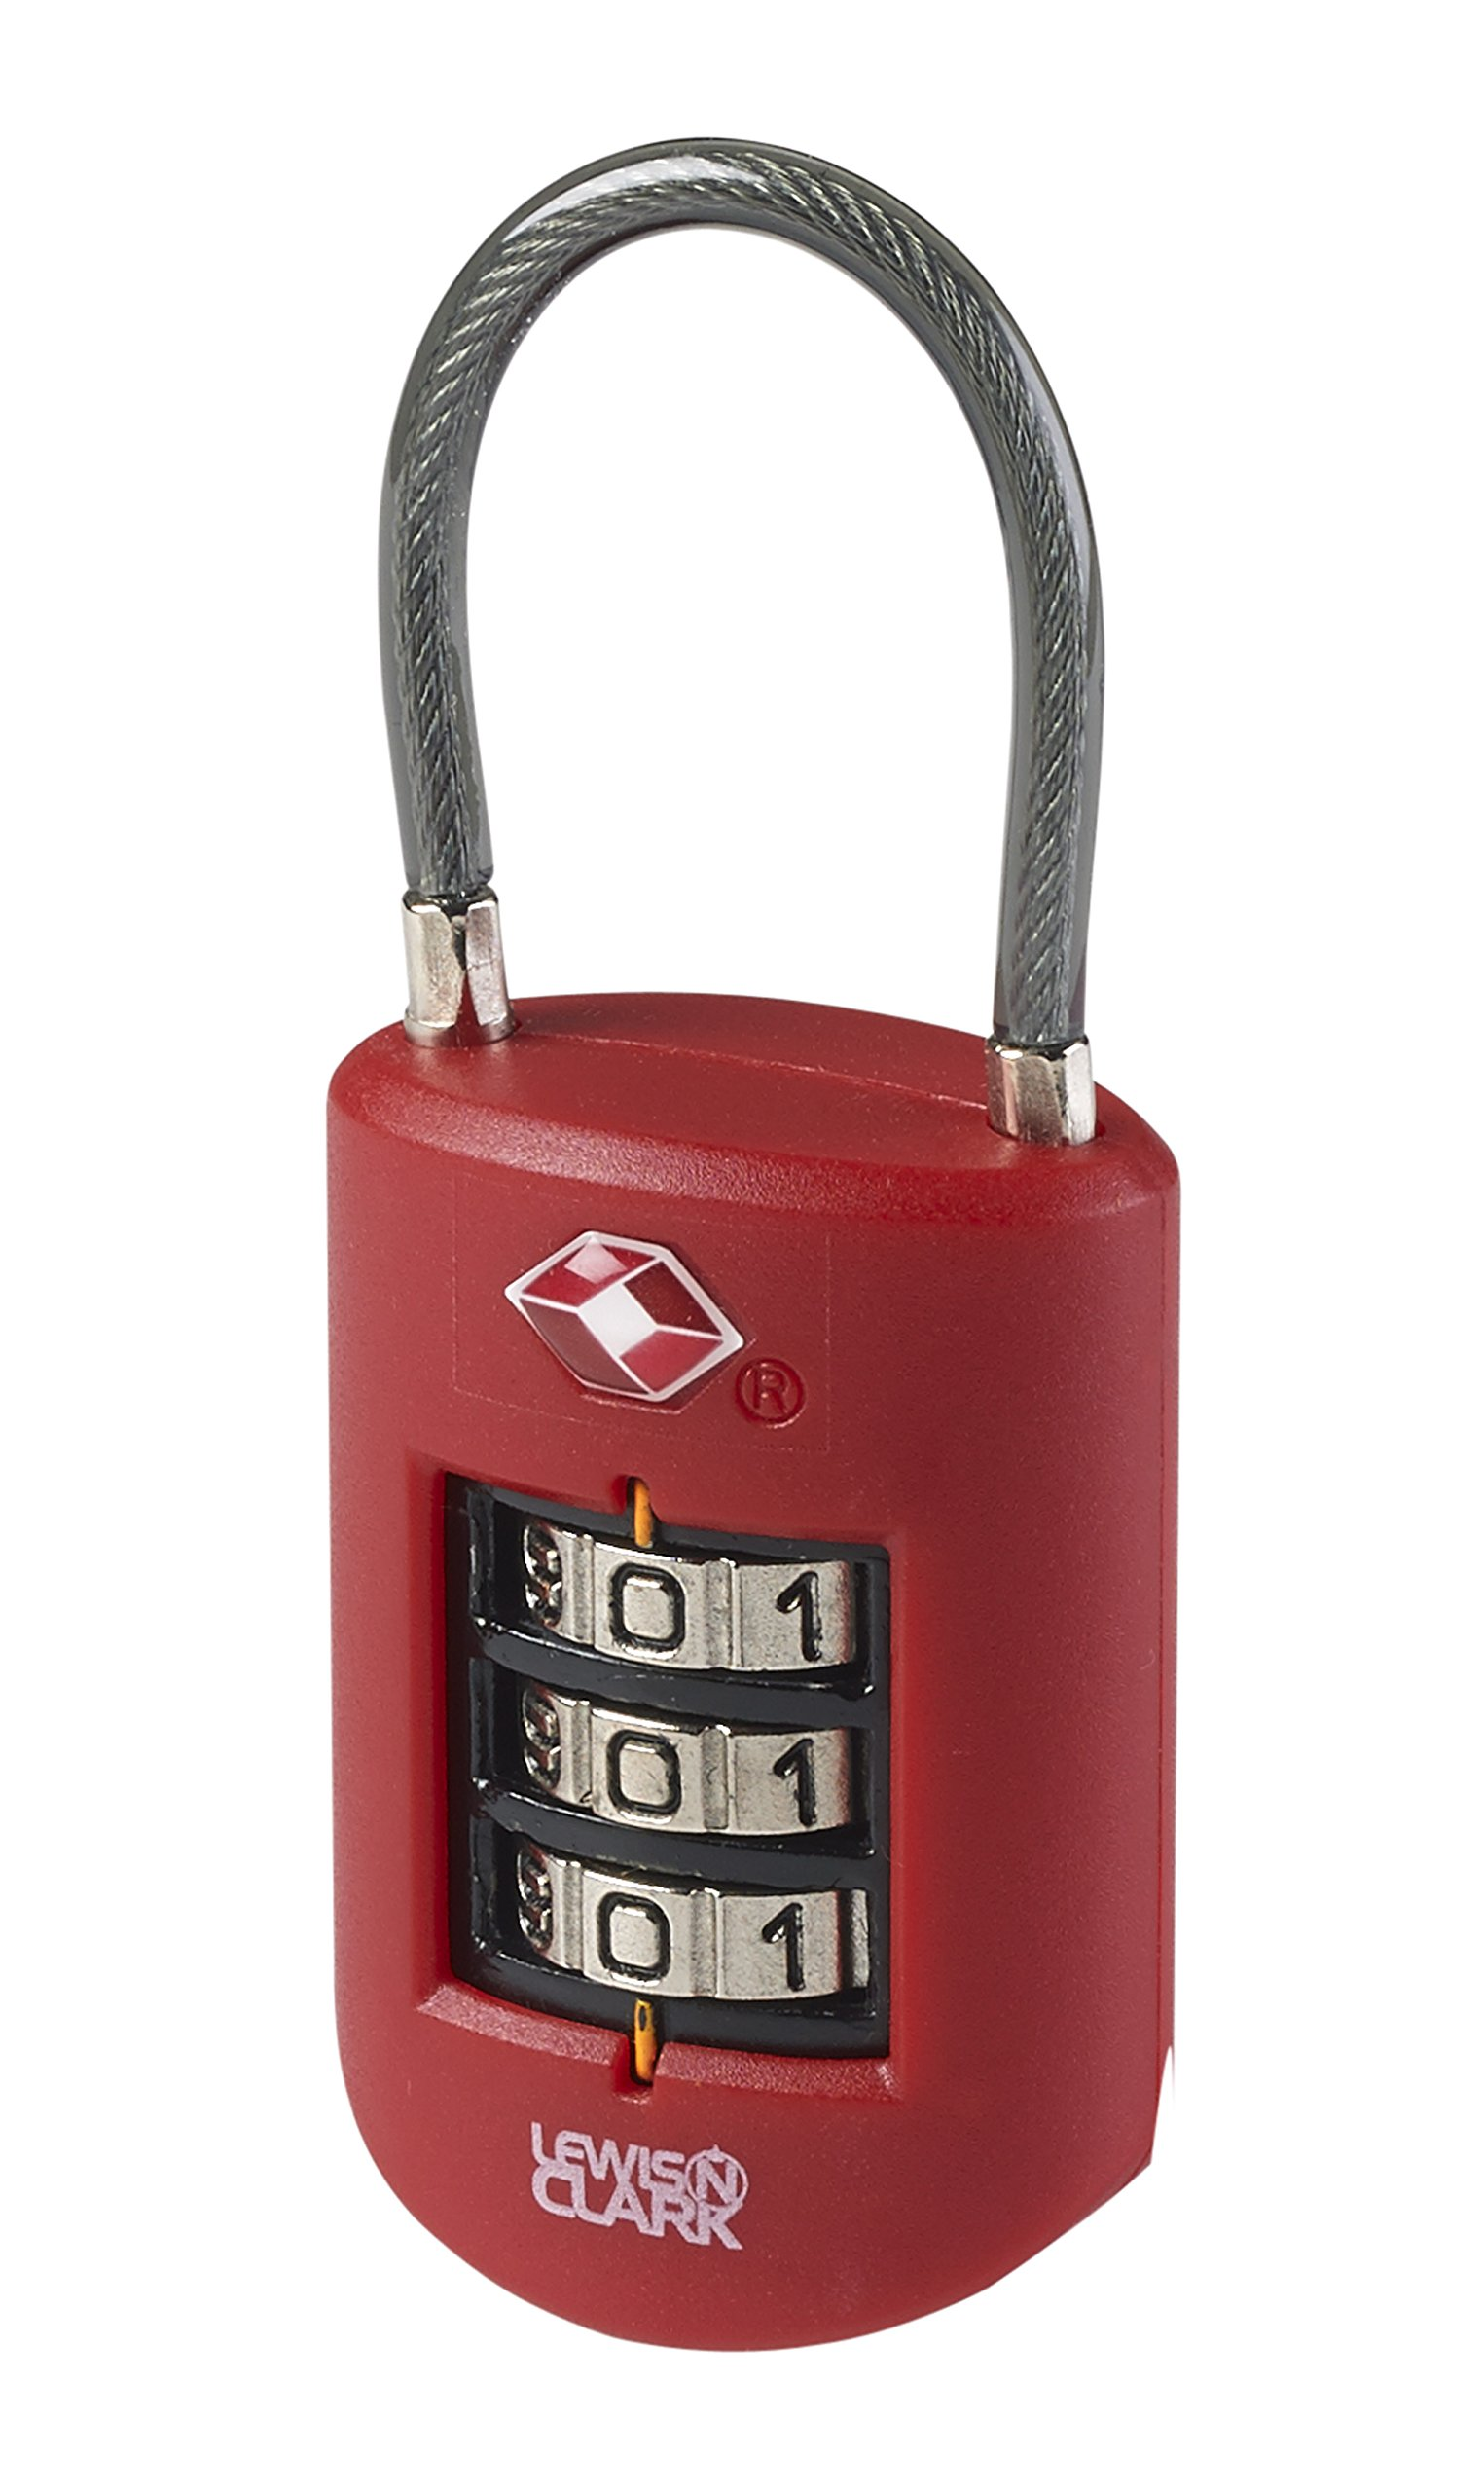 Lewis N Clark Travel Sentry Large Dial Cable Lock, Red, One Size